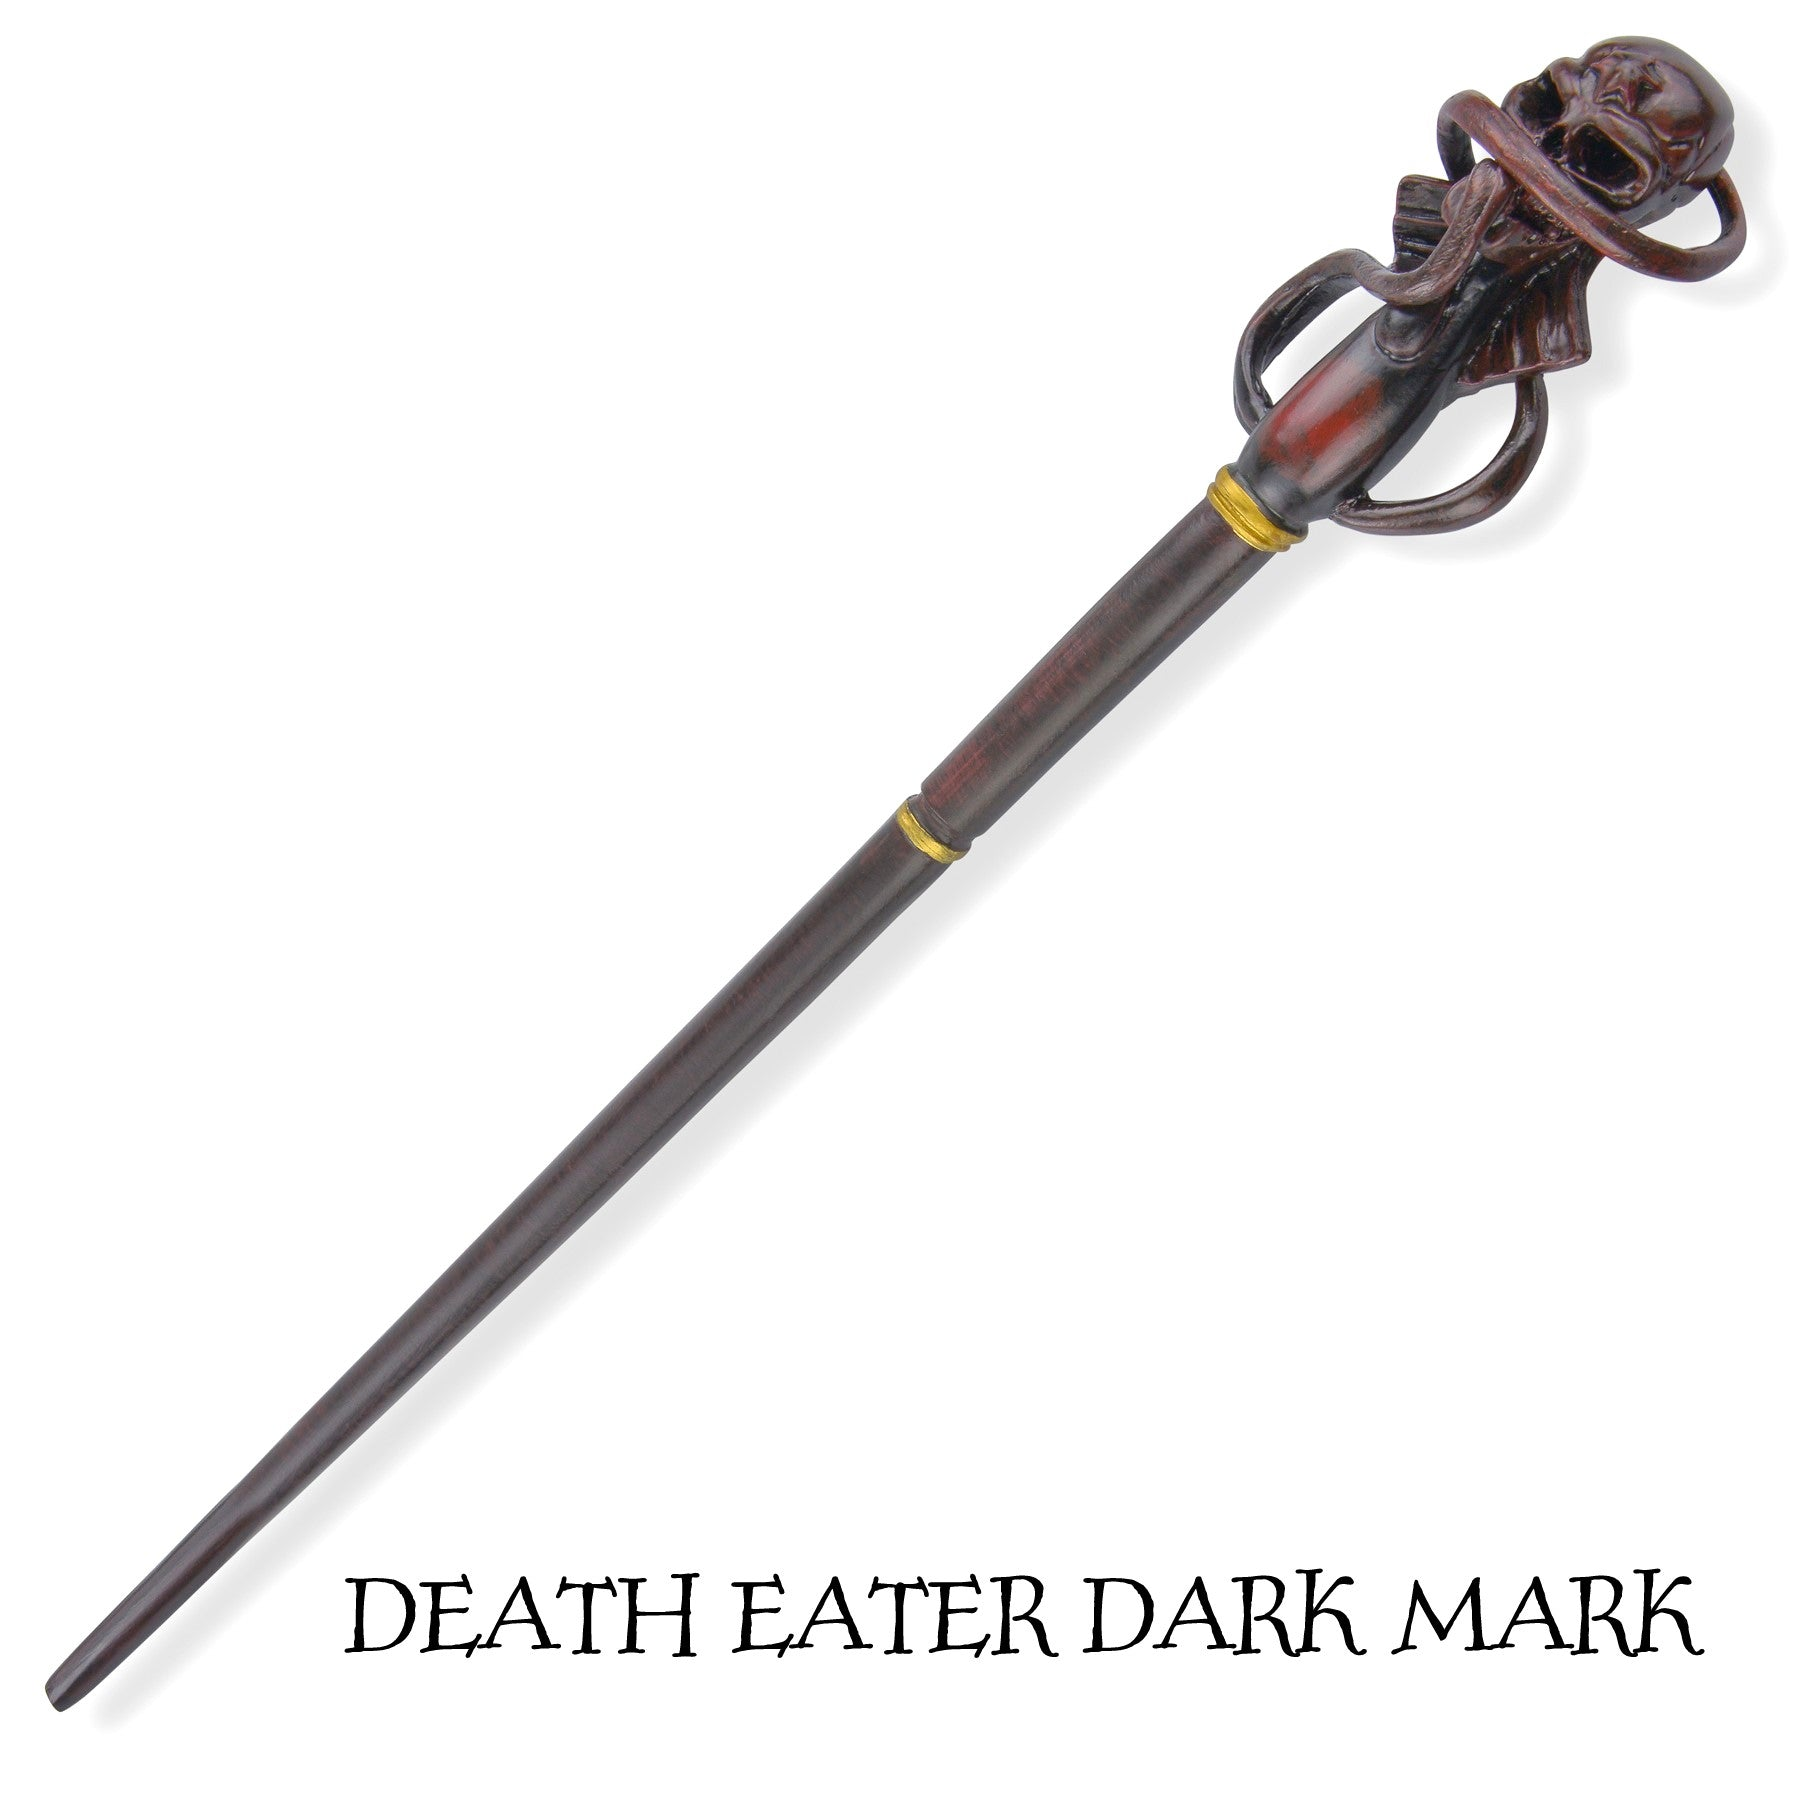 Death Eater (Dark Mark) Wand